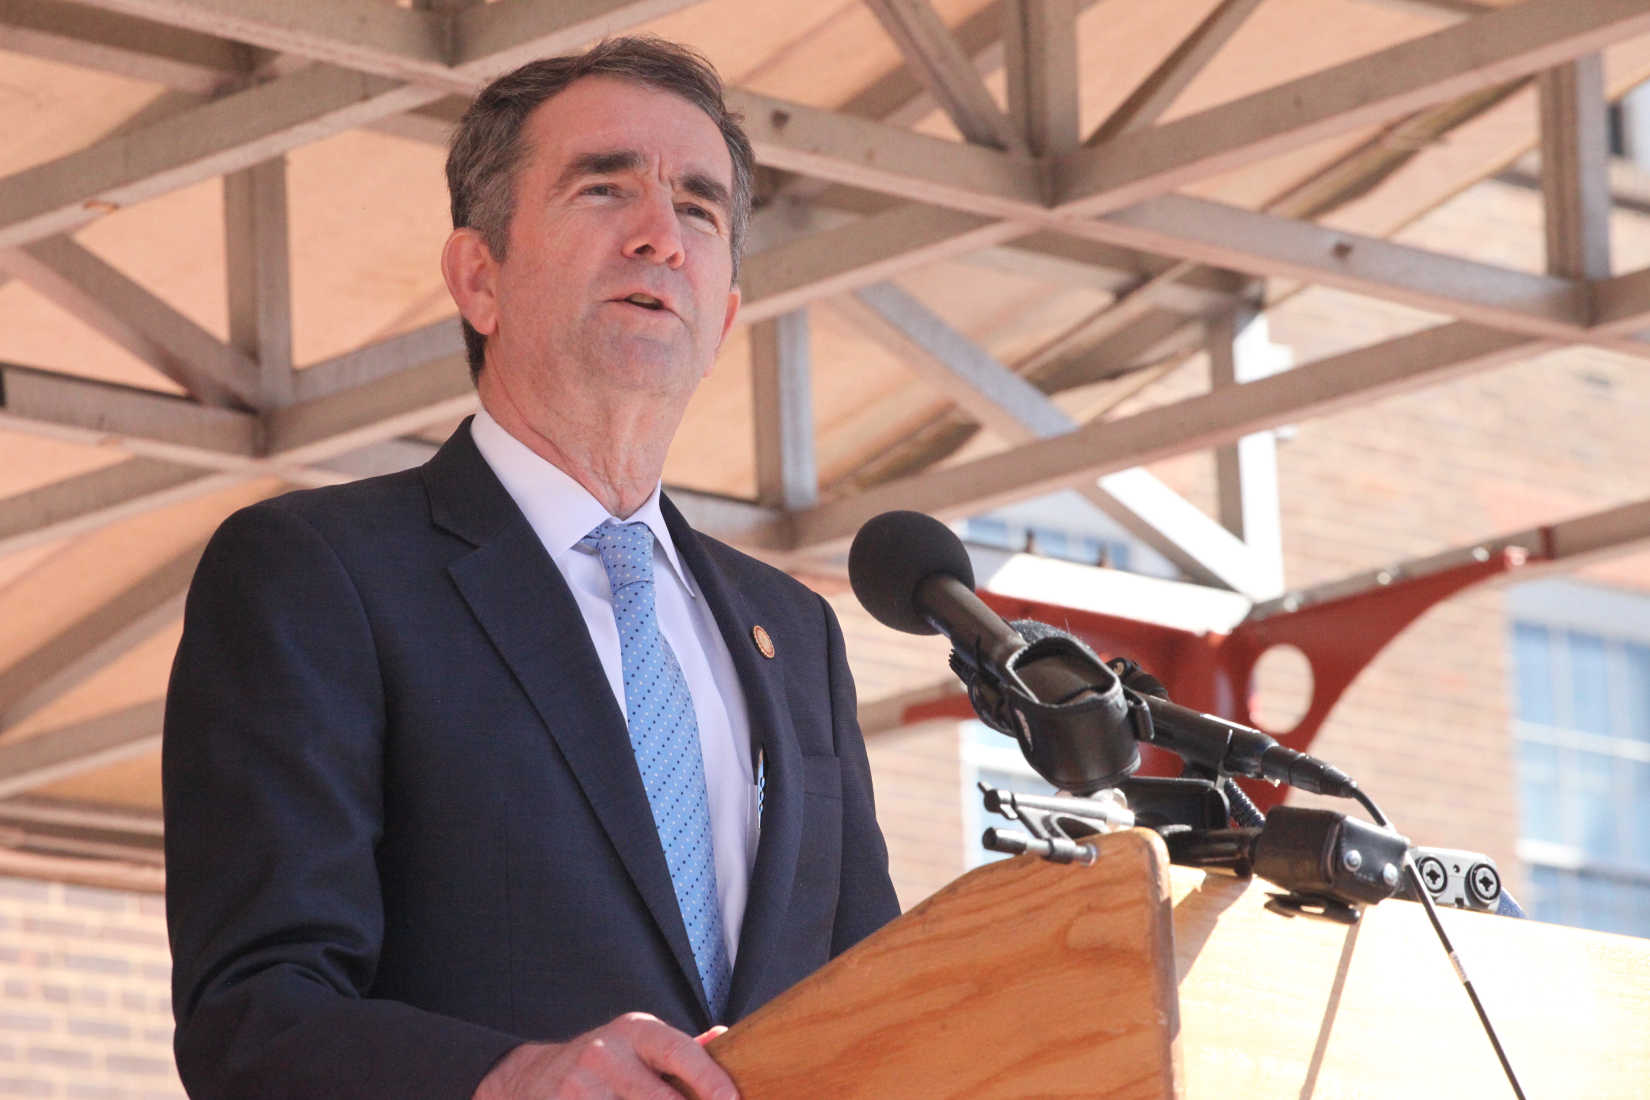 BREAKING: Virginia Republicans Are Looking to Cut a Gun Control Deal with Democrat Governor